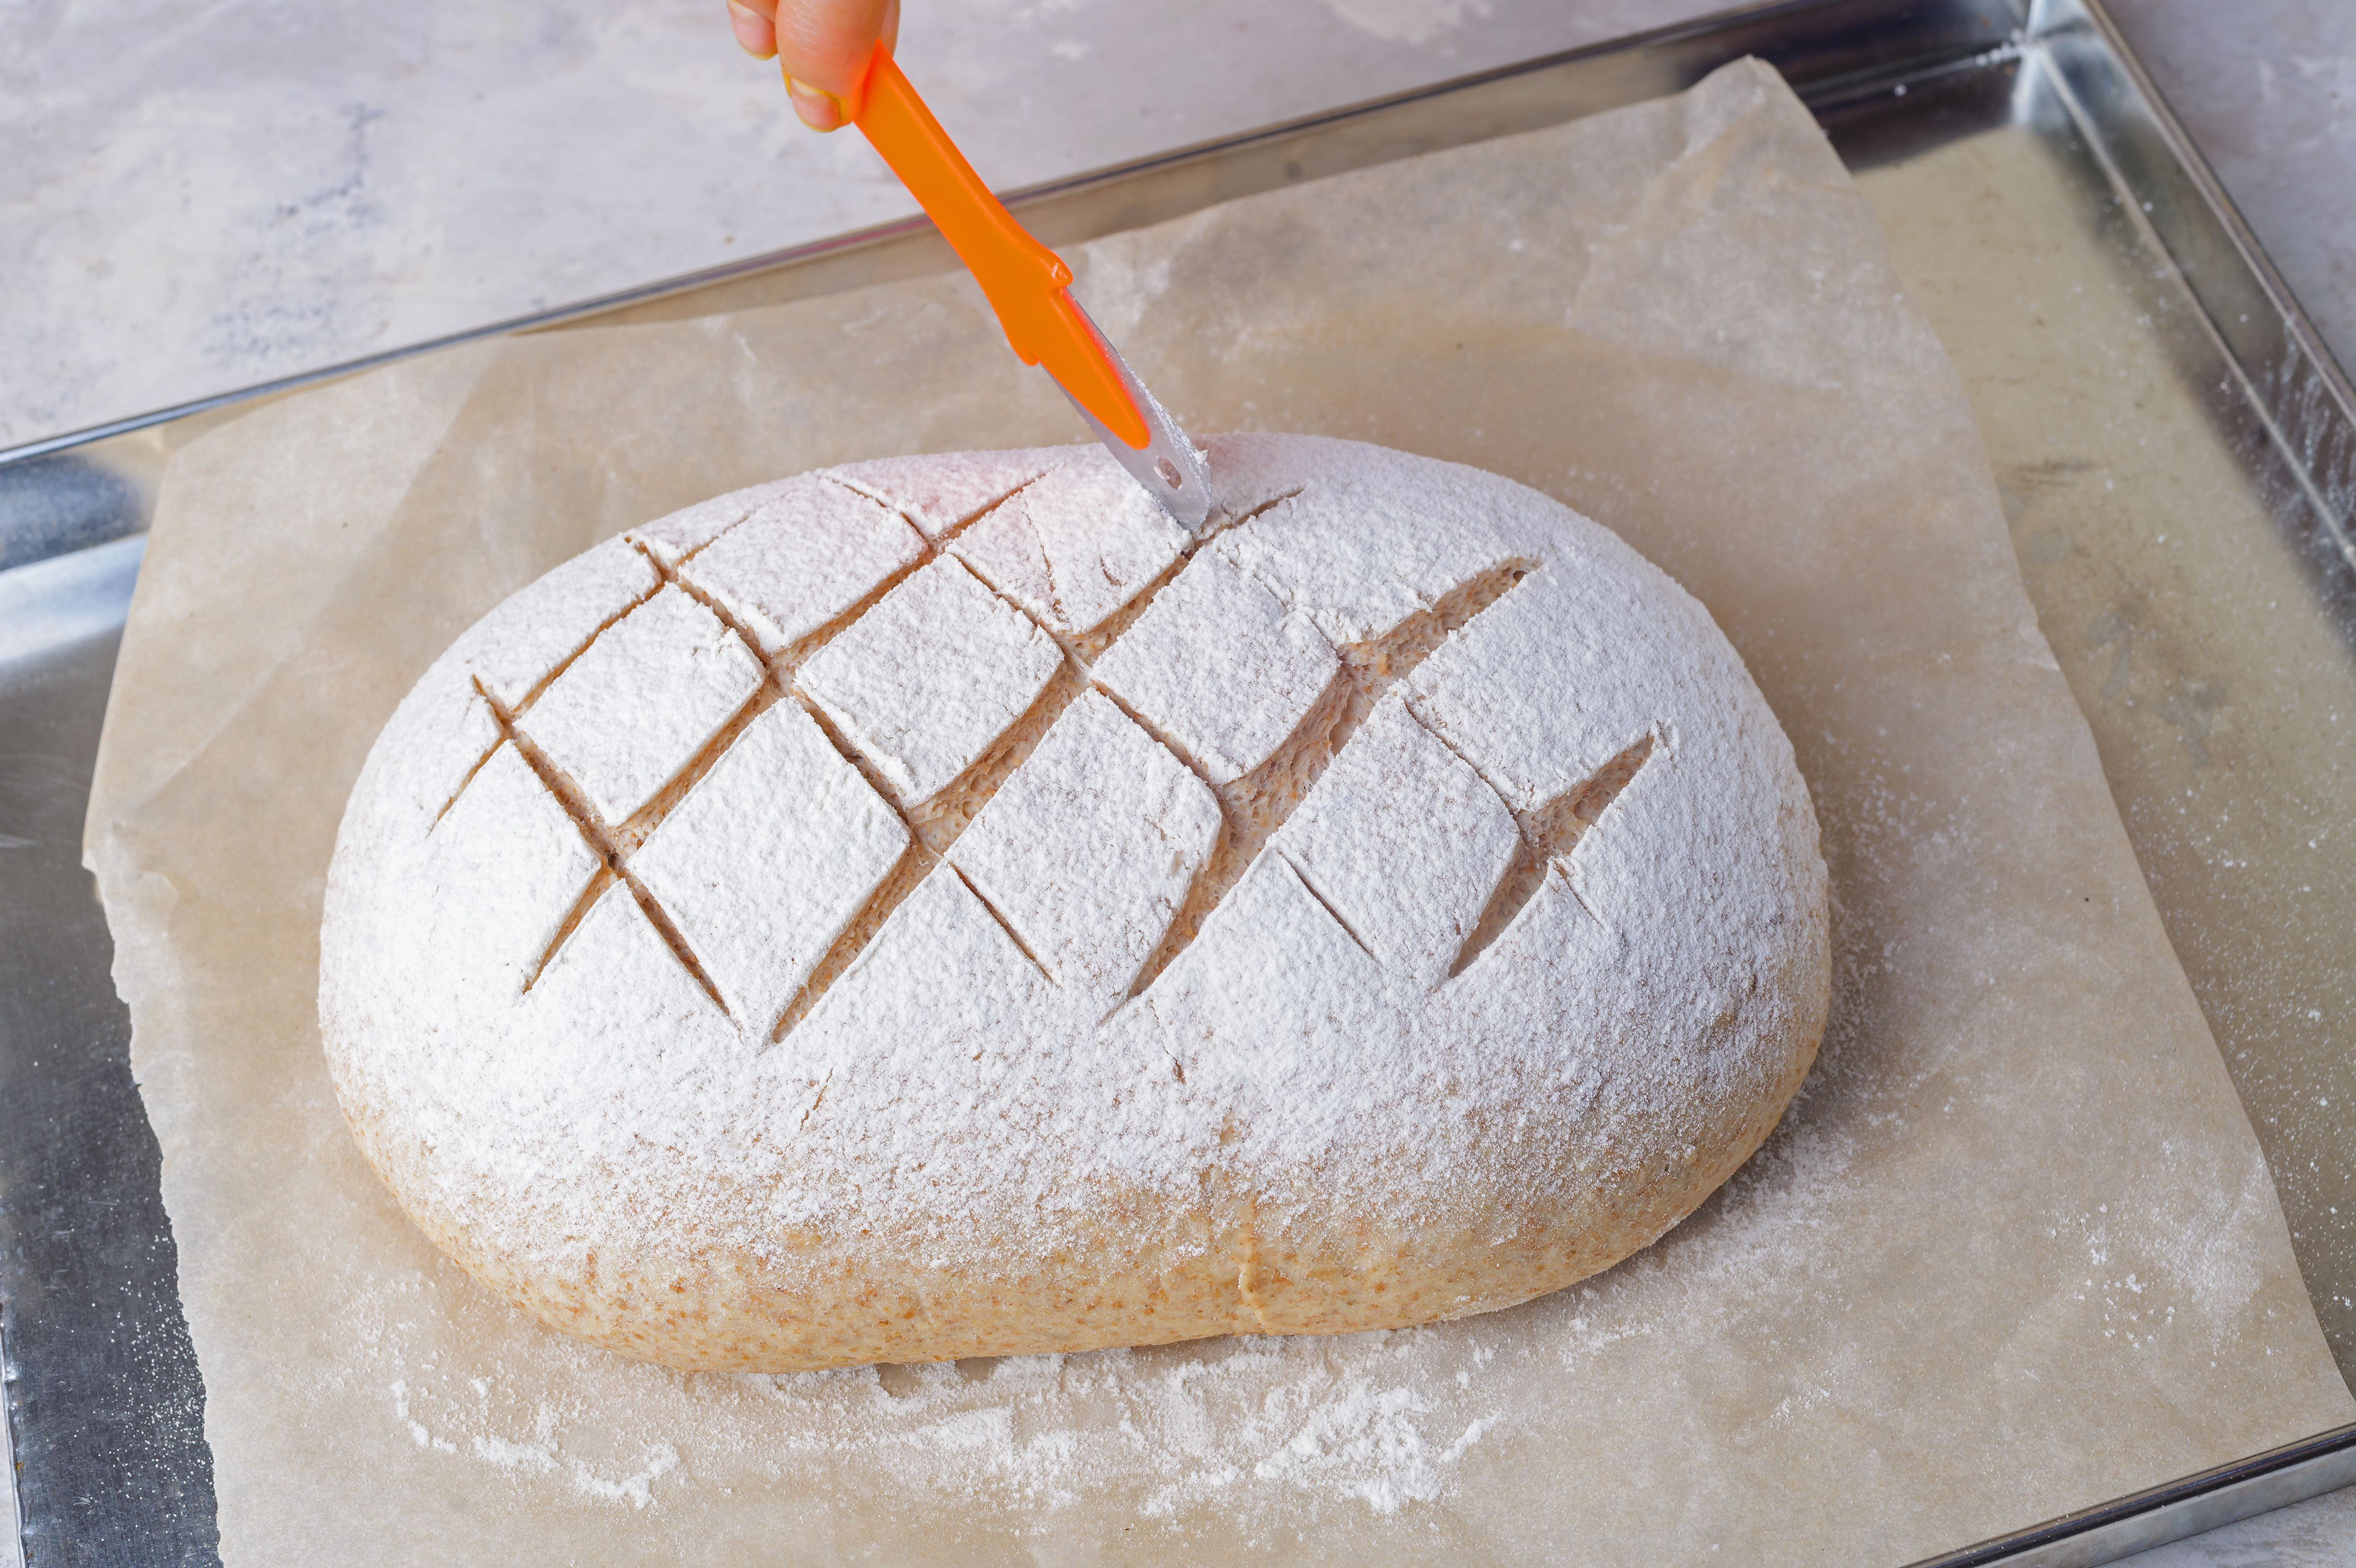 What's the Deal With Scoring Bread?